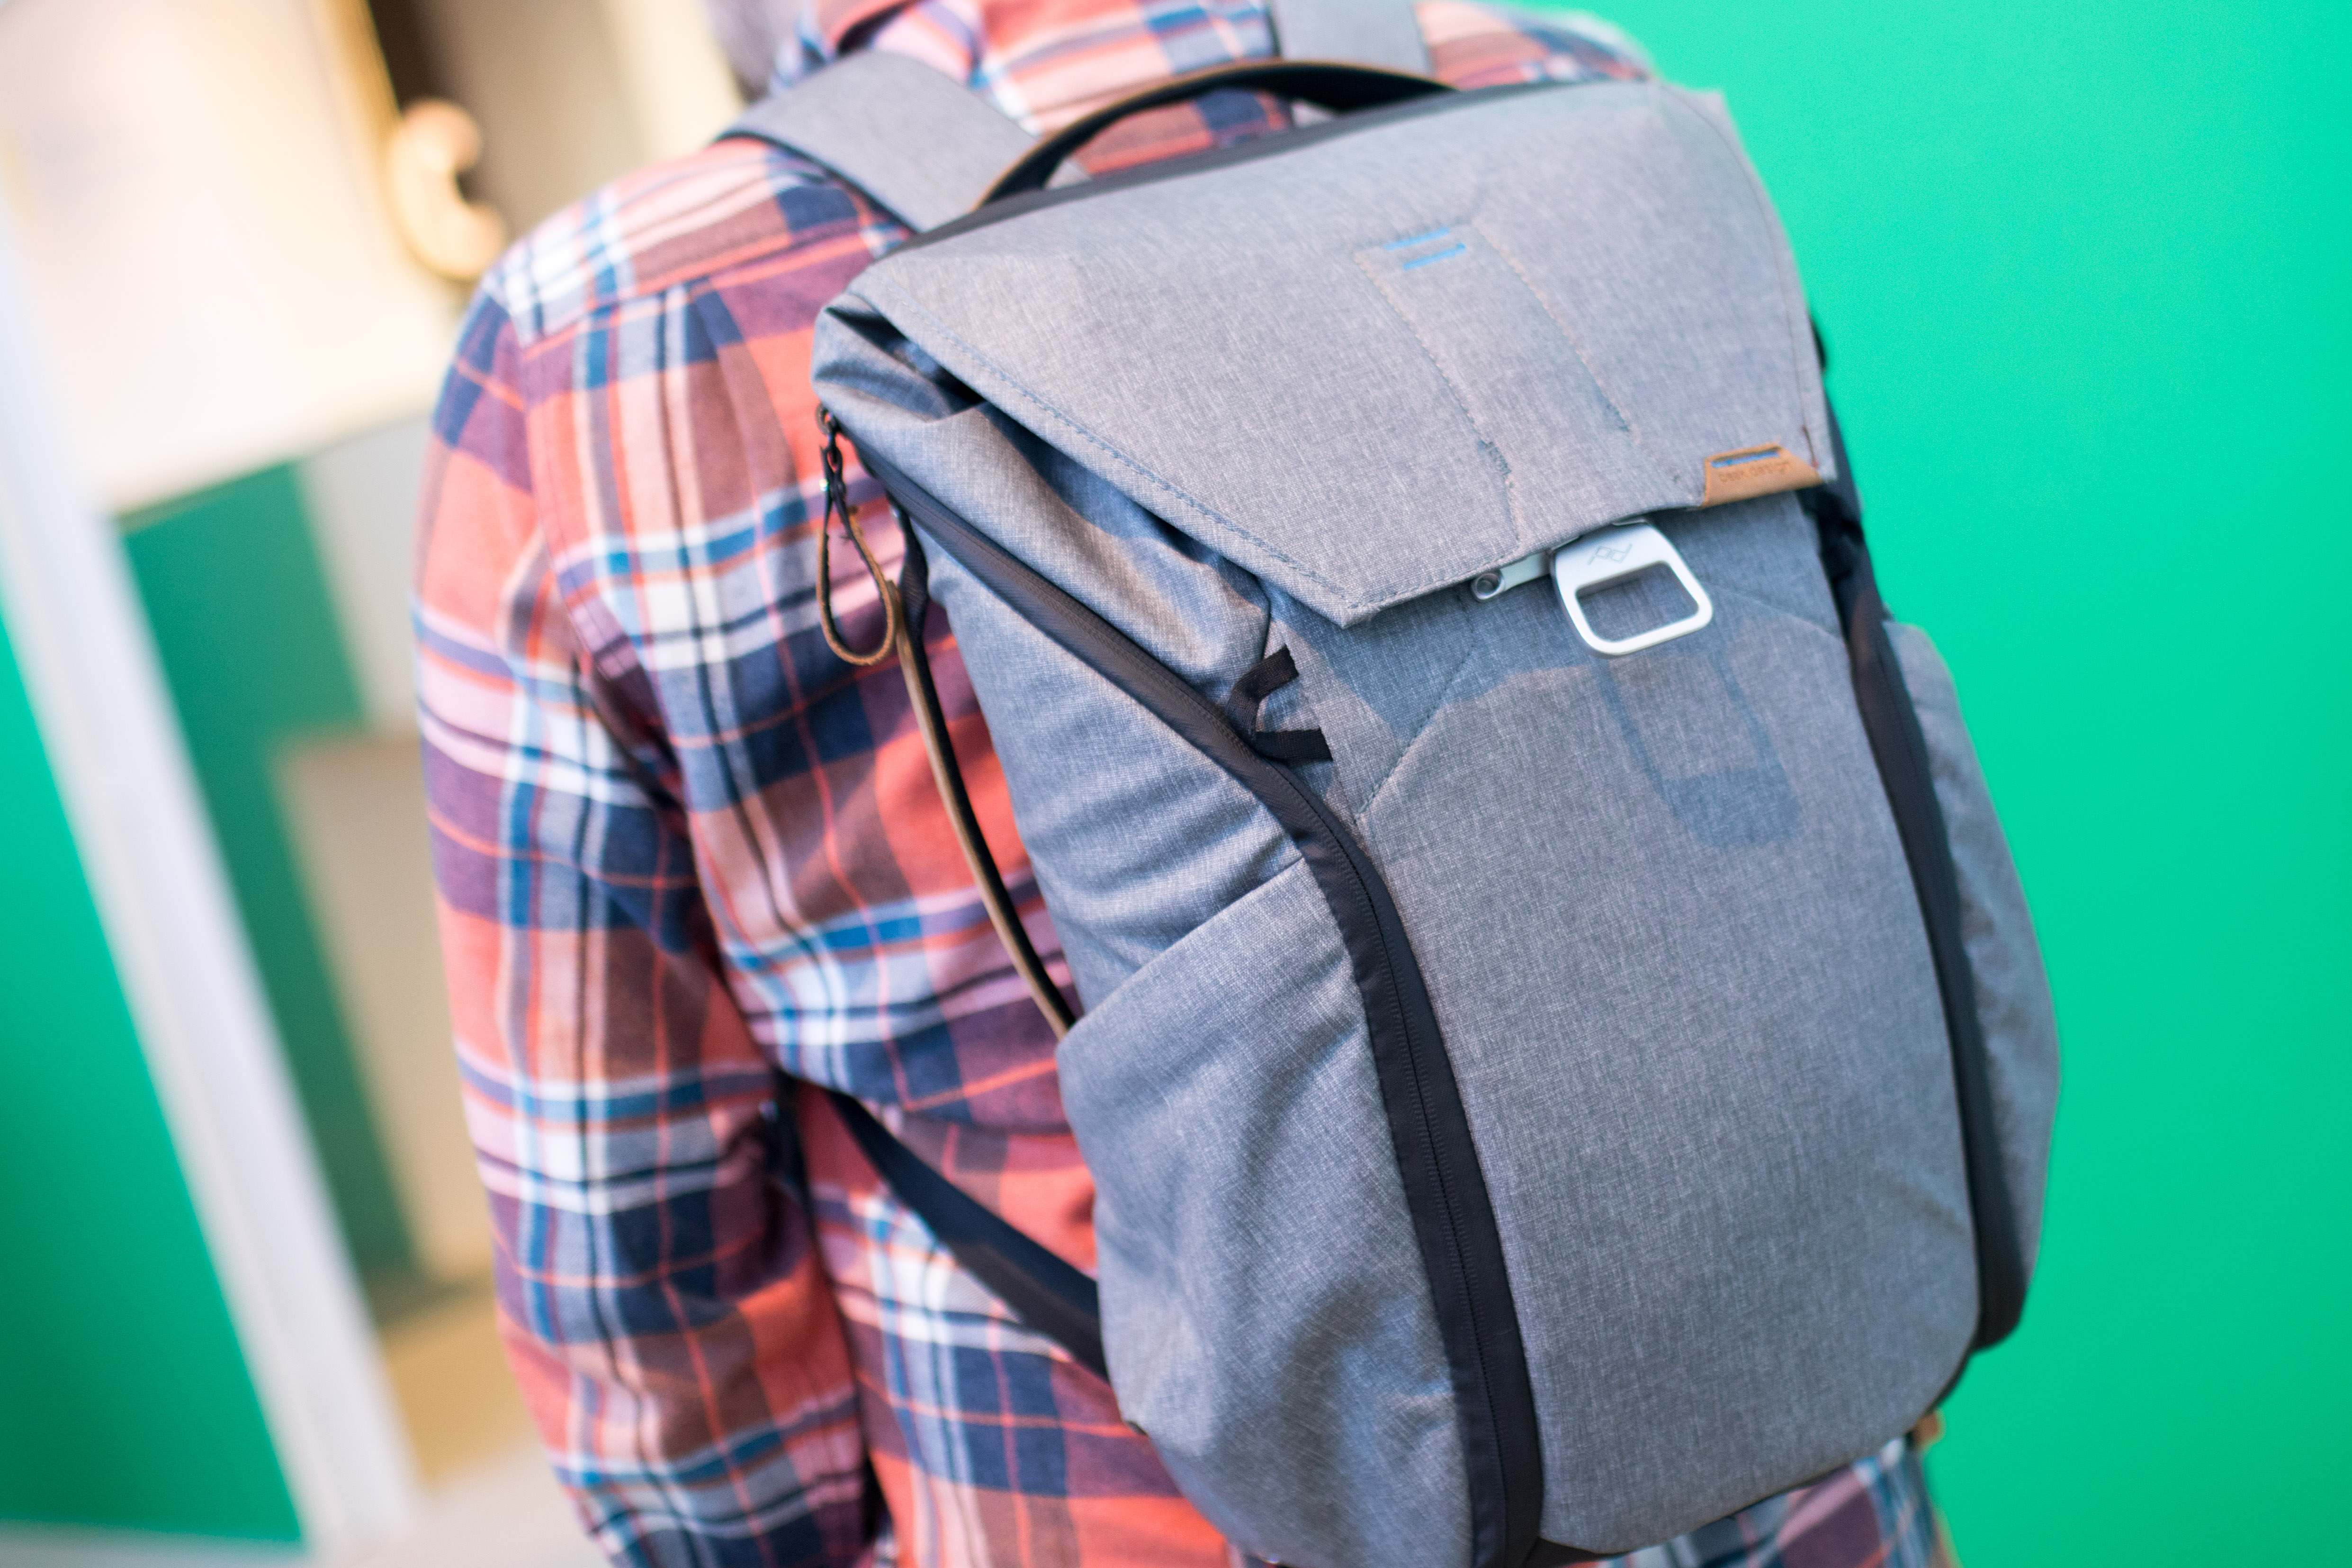 Peak Design Peak Design S Everyday Backpack Was My Surprise Hit Of Ces 2018